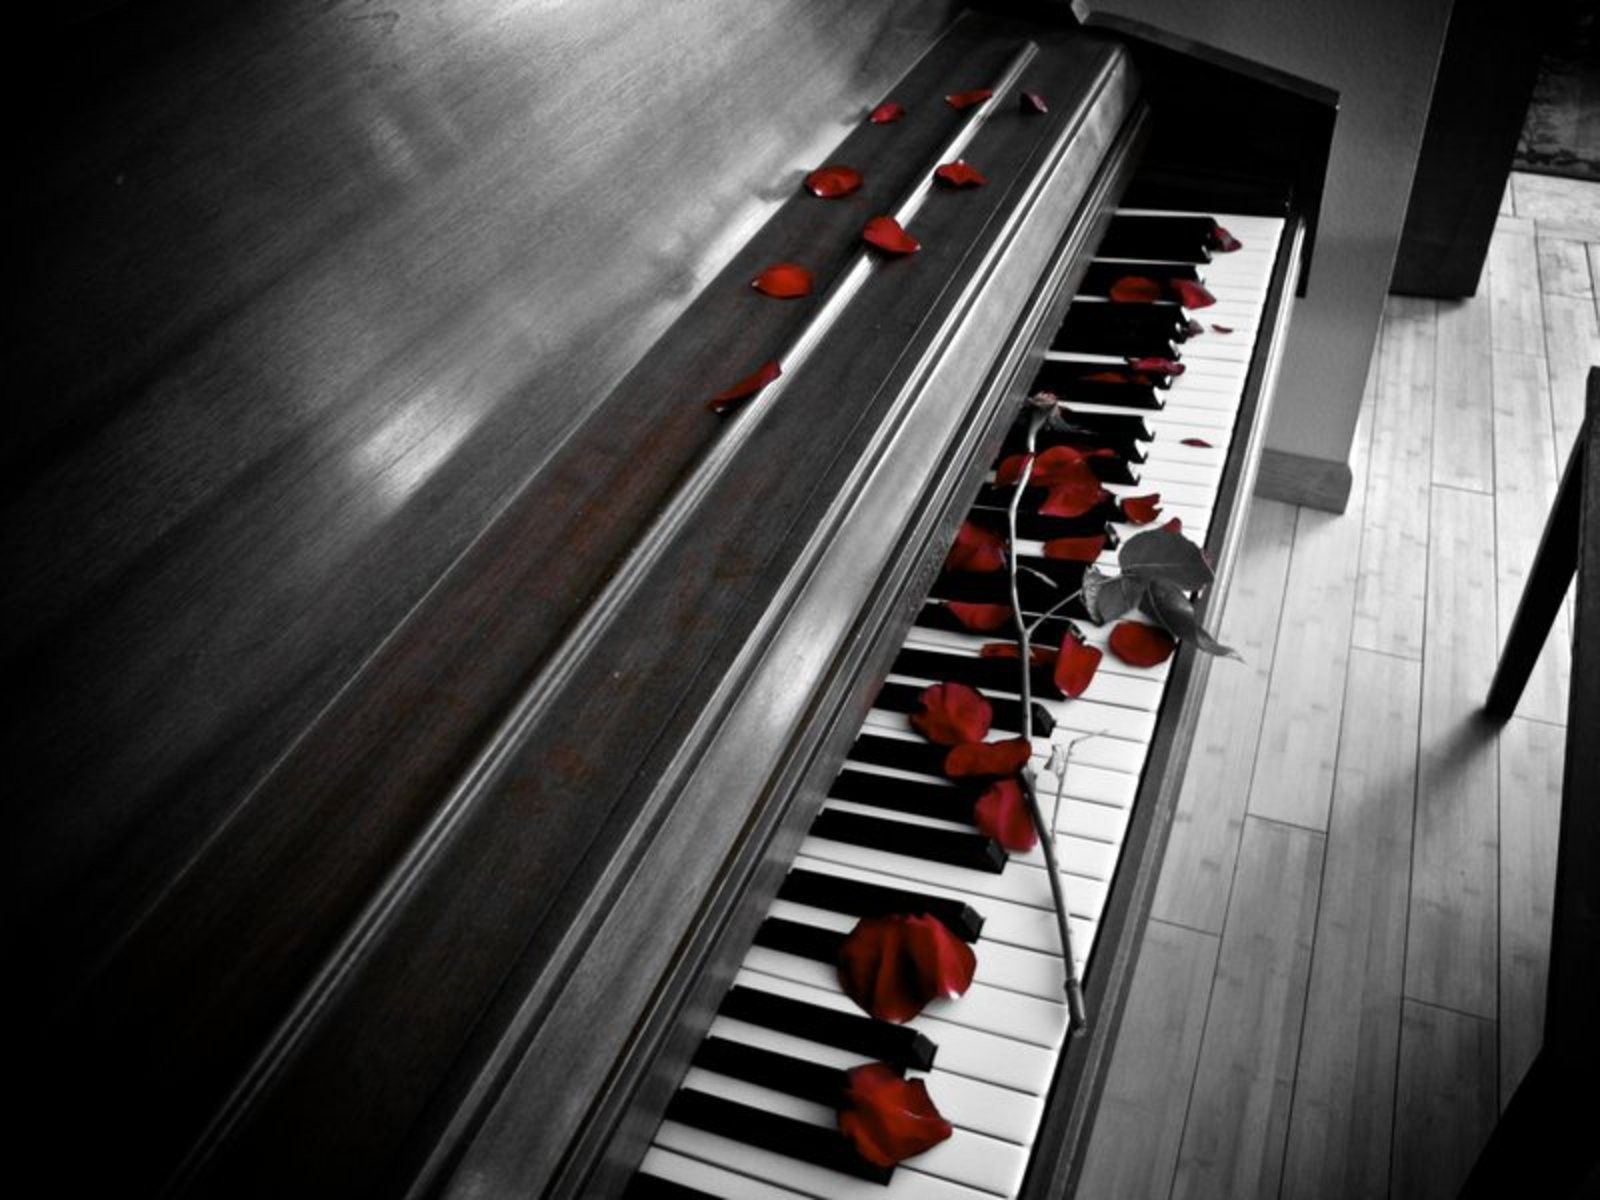 Piano Music Wallpaper: HQ Wallpapers Plus Provides Different Size Of Abstract